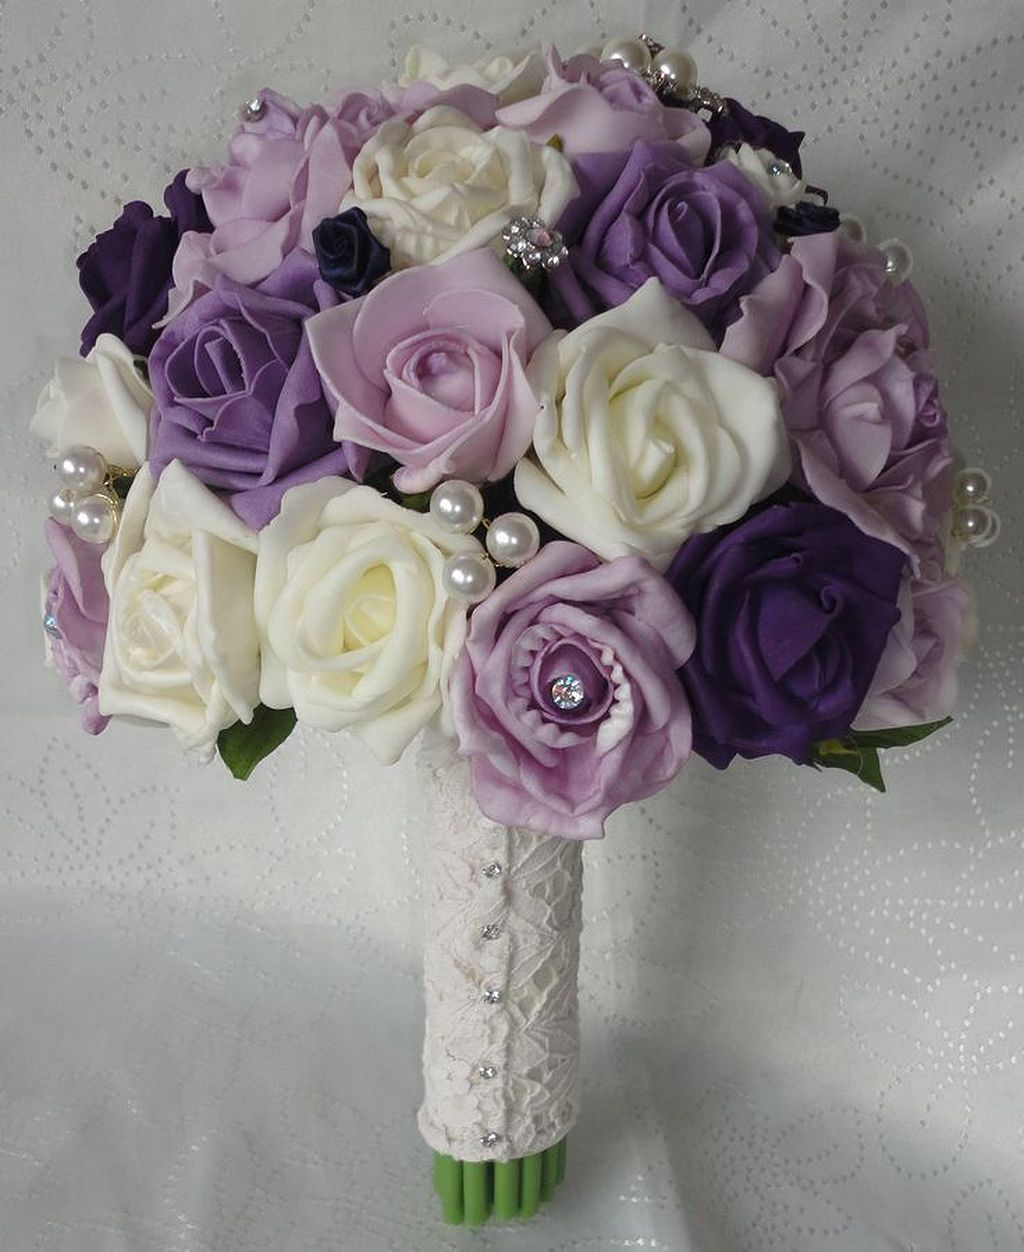 Purple Flower Wedding: Tips For Looking Your Best On Your Wedding Day